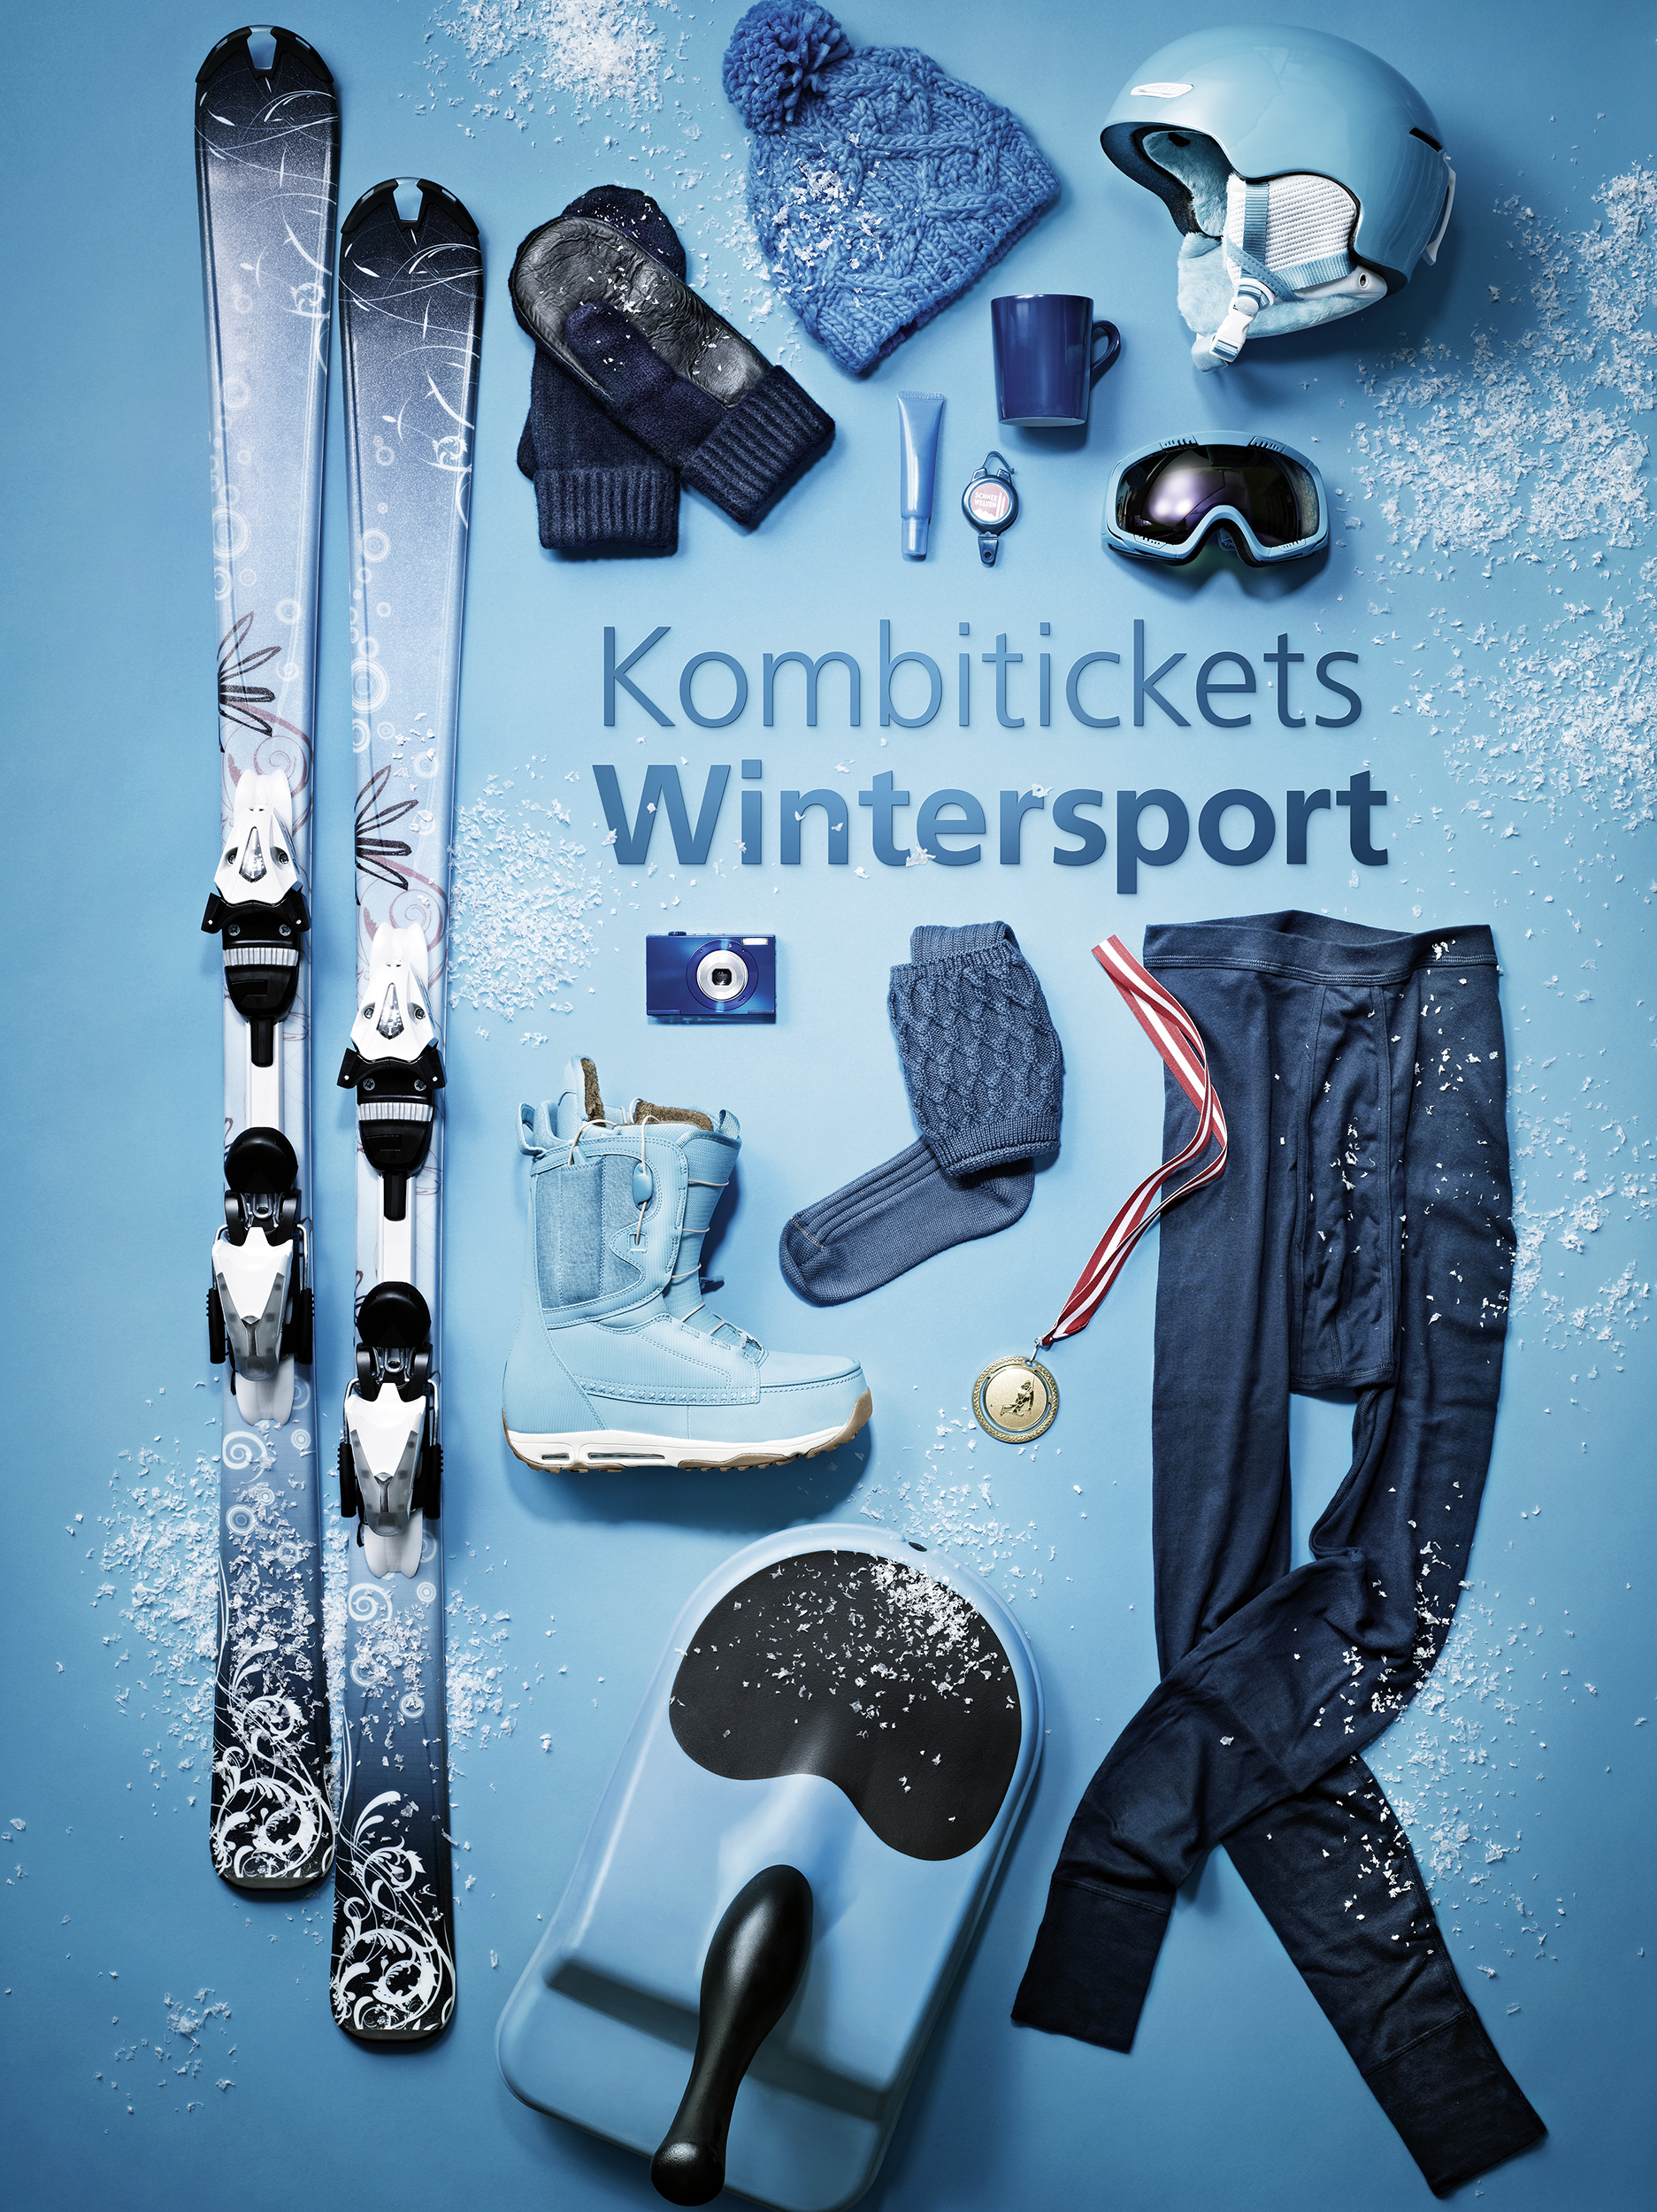 Kombiticket_OeBB_Winter_CMYK.jpg